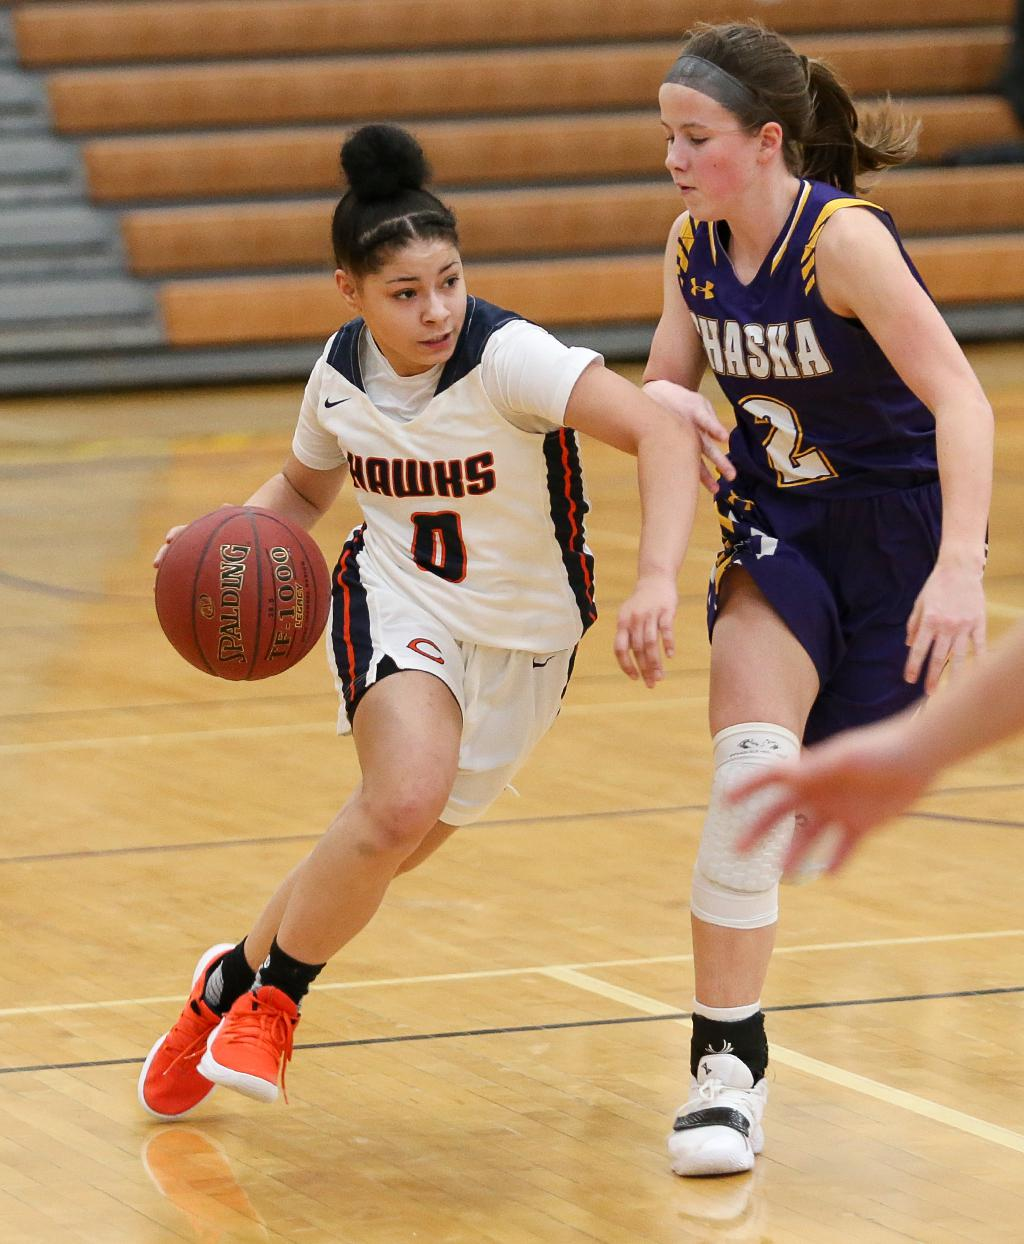 Jayla Reliford (0) carries the ball past defender Kennedy Sanders (2).  Reliford scored 11 points as Cooper held on for the 75-70 win over Chaska. Photo by Cheryl Myers, SportsEngine